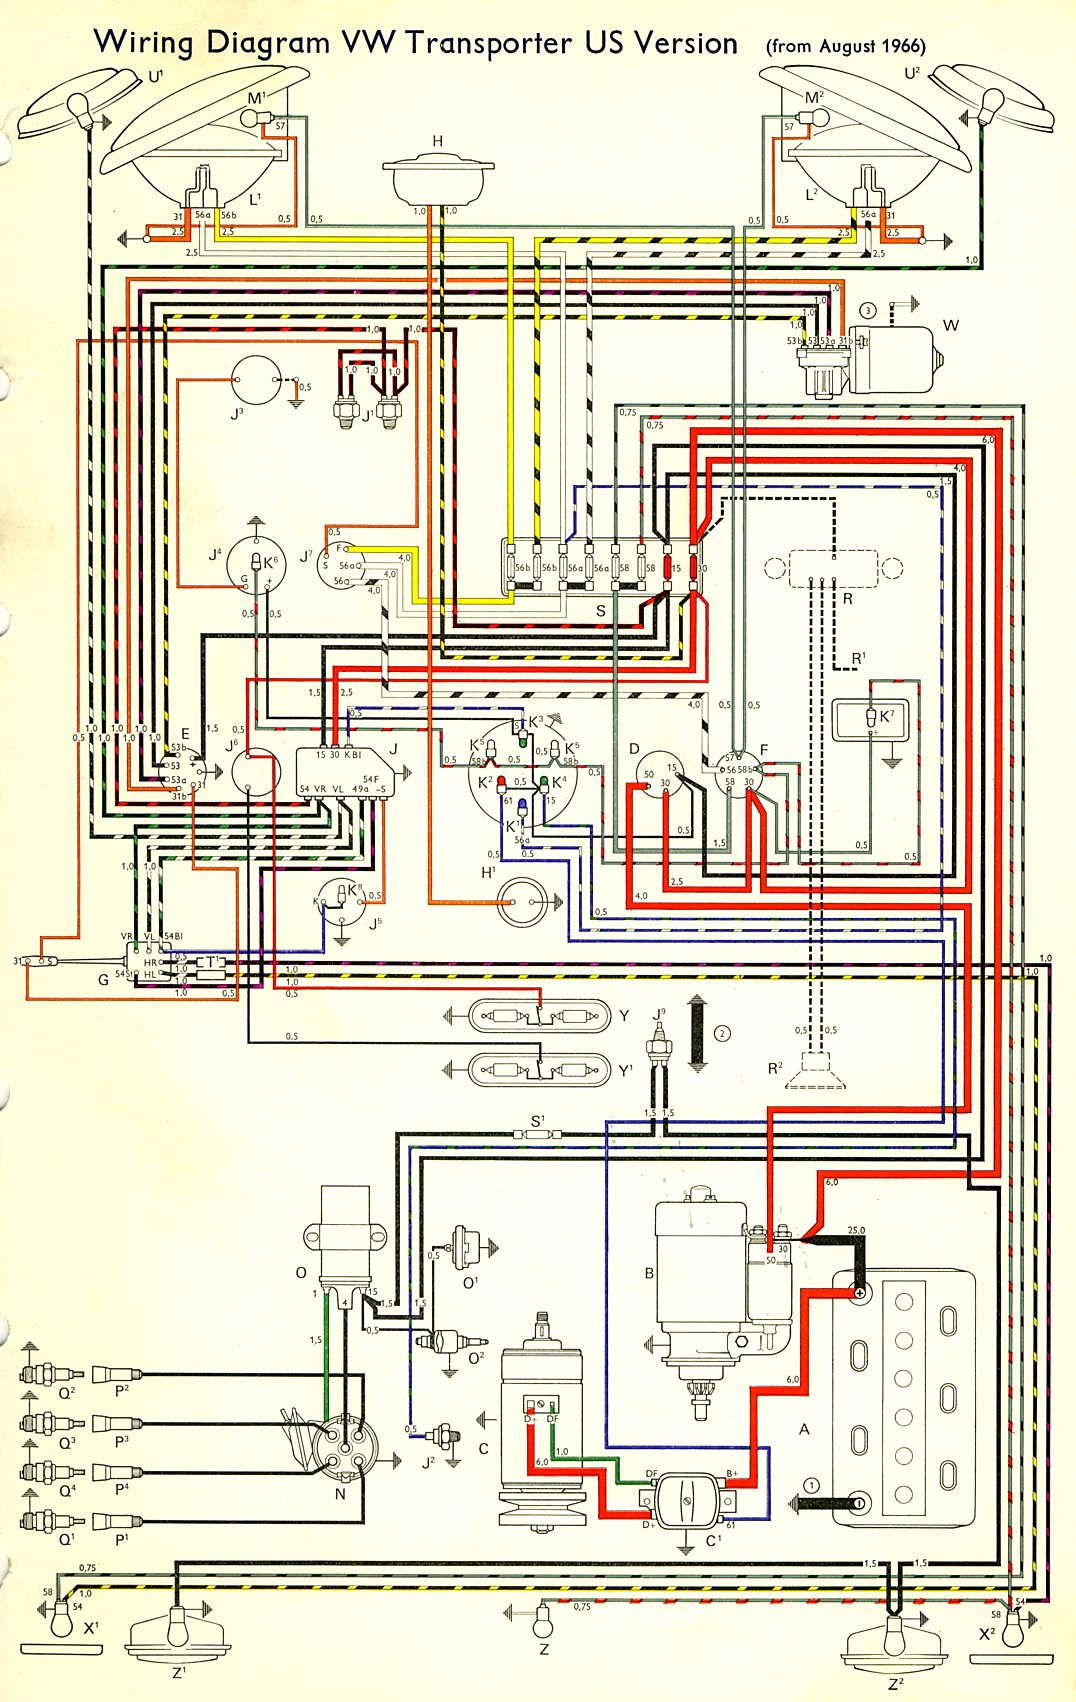 bus_67_USA 67 vw bus wiring harness 71 vw wiring harness \u2022 wiring diagrams Wiring Harness Diagram at honlapkeszites.co